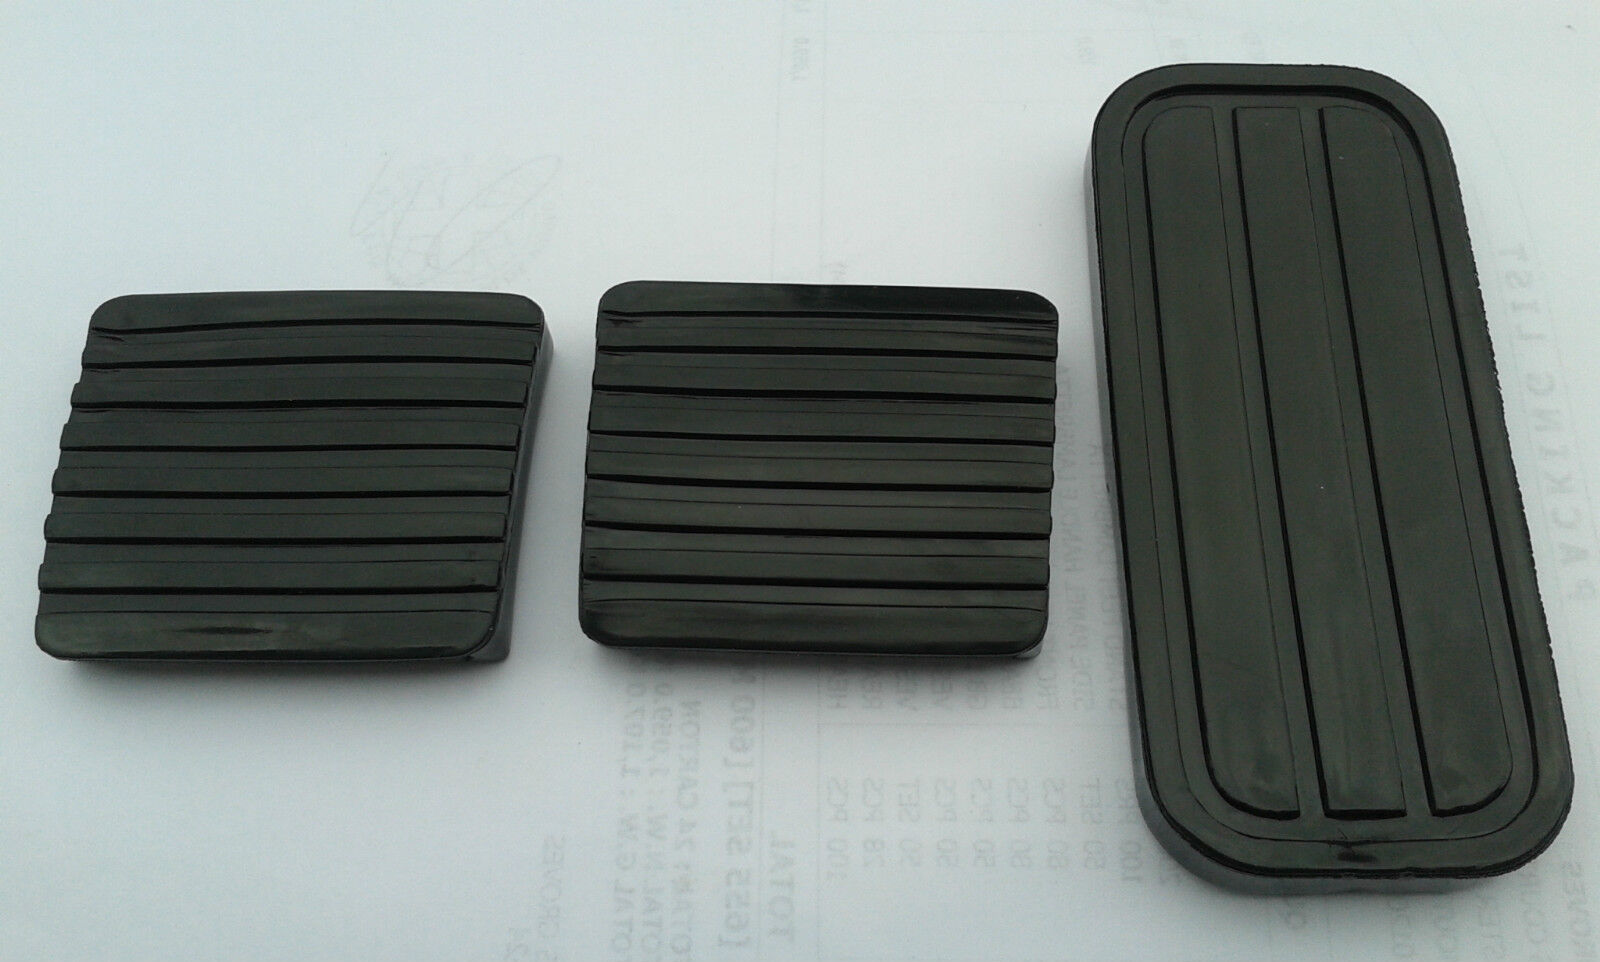 Car Parts - VW MK1 RABBIT BRAKE CLUTCH AND GAS PEDAL RUBBERS BLACK GTI GOLF